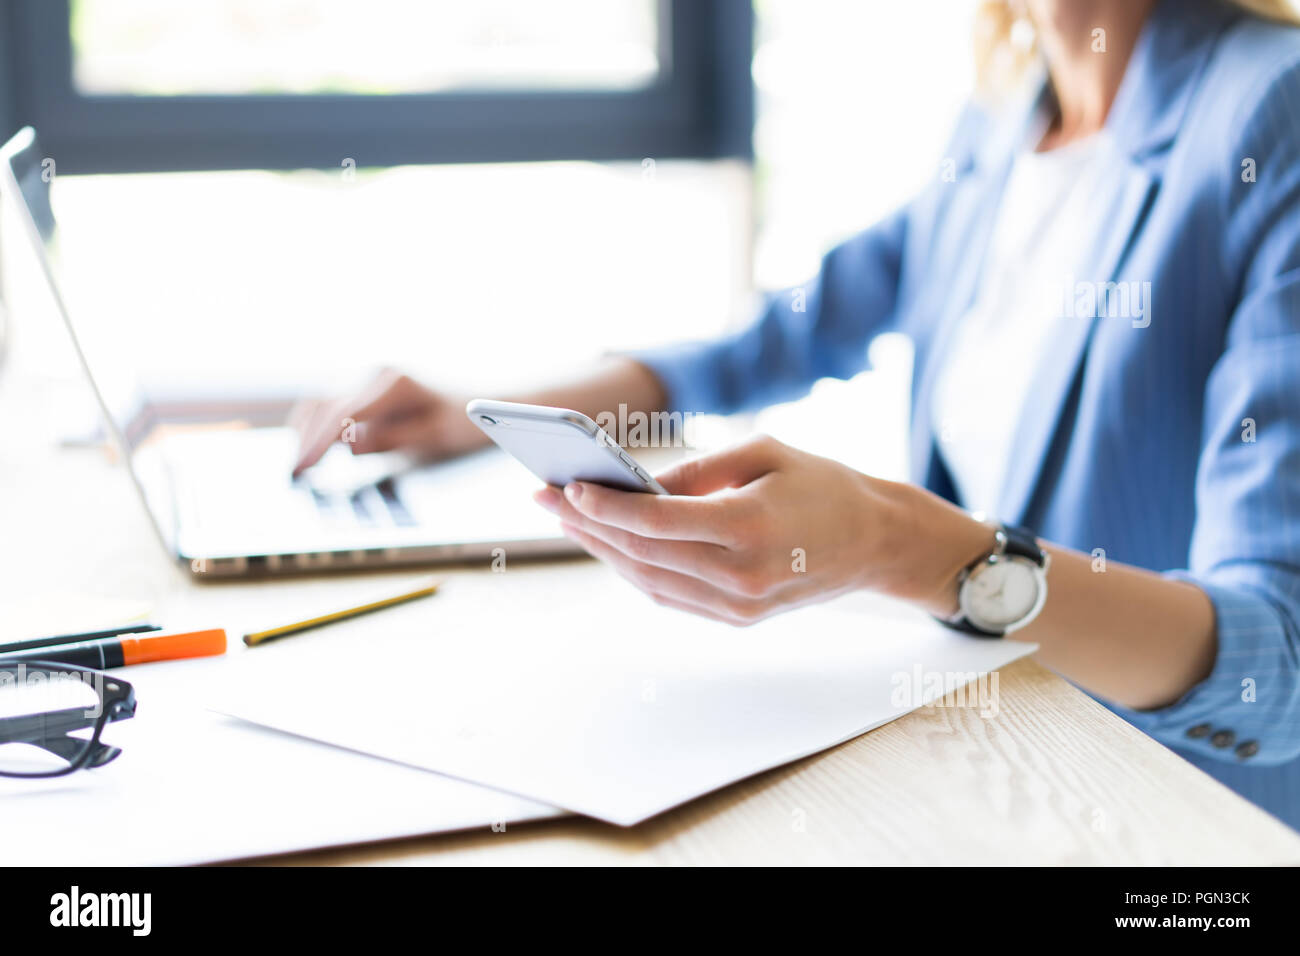 Businesswoman working at office desk and texting with her mobile phone. - Stock Image